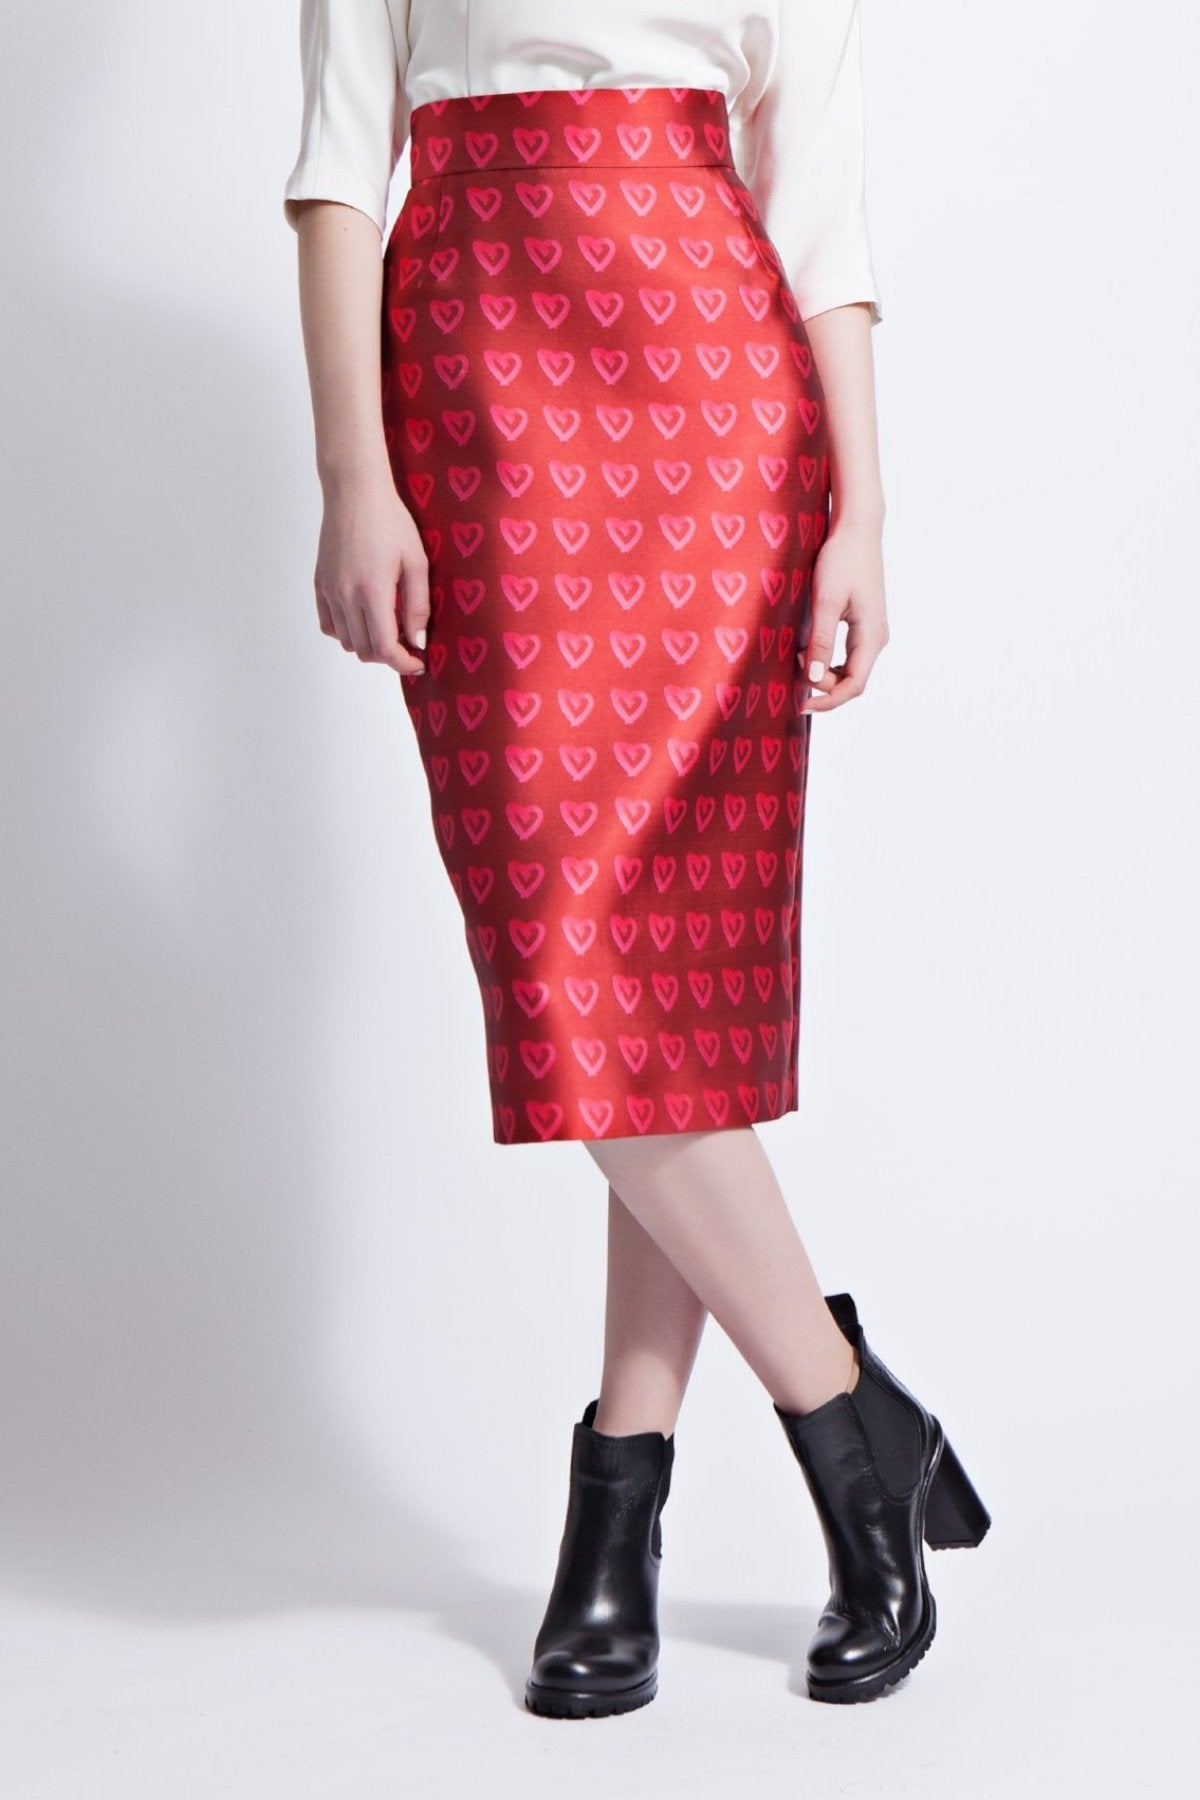 Karen Printed Pencil Skirt